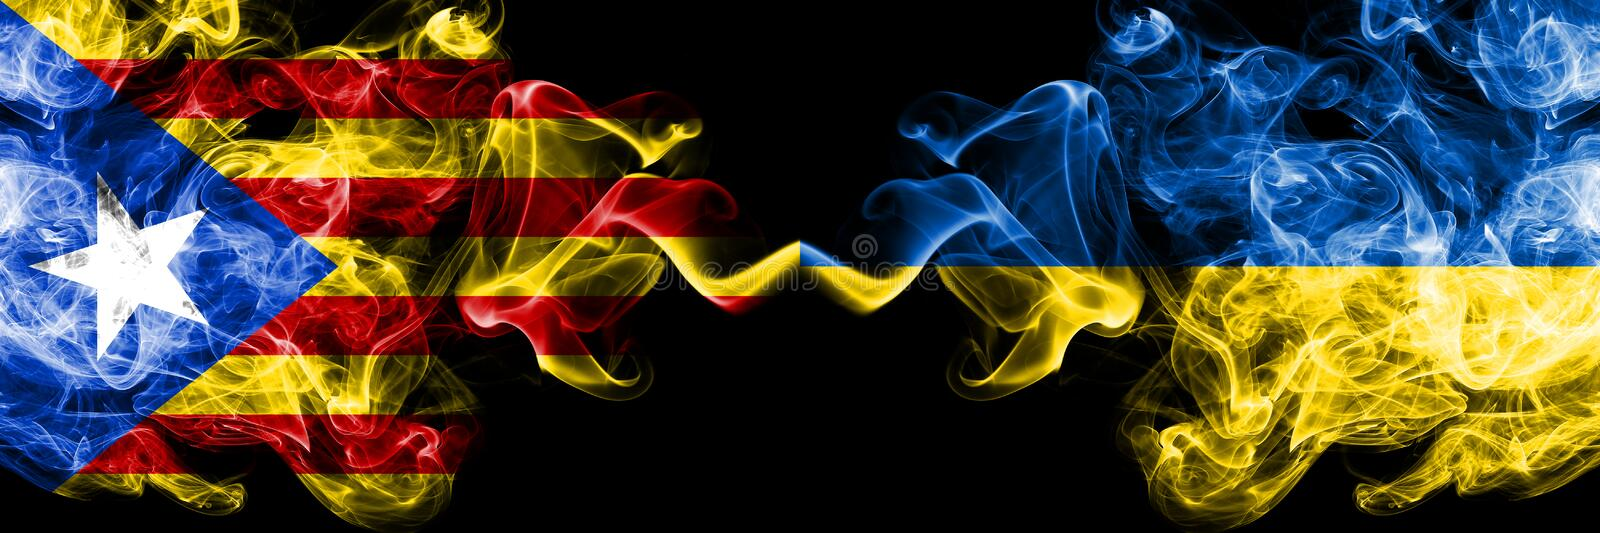 Catalonia vs Ukraine, Ukrainian smoke flags placed side by side. Thick colored silky smoke flags of Catalonia and Ukraine,. Ukrainian stock illustration